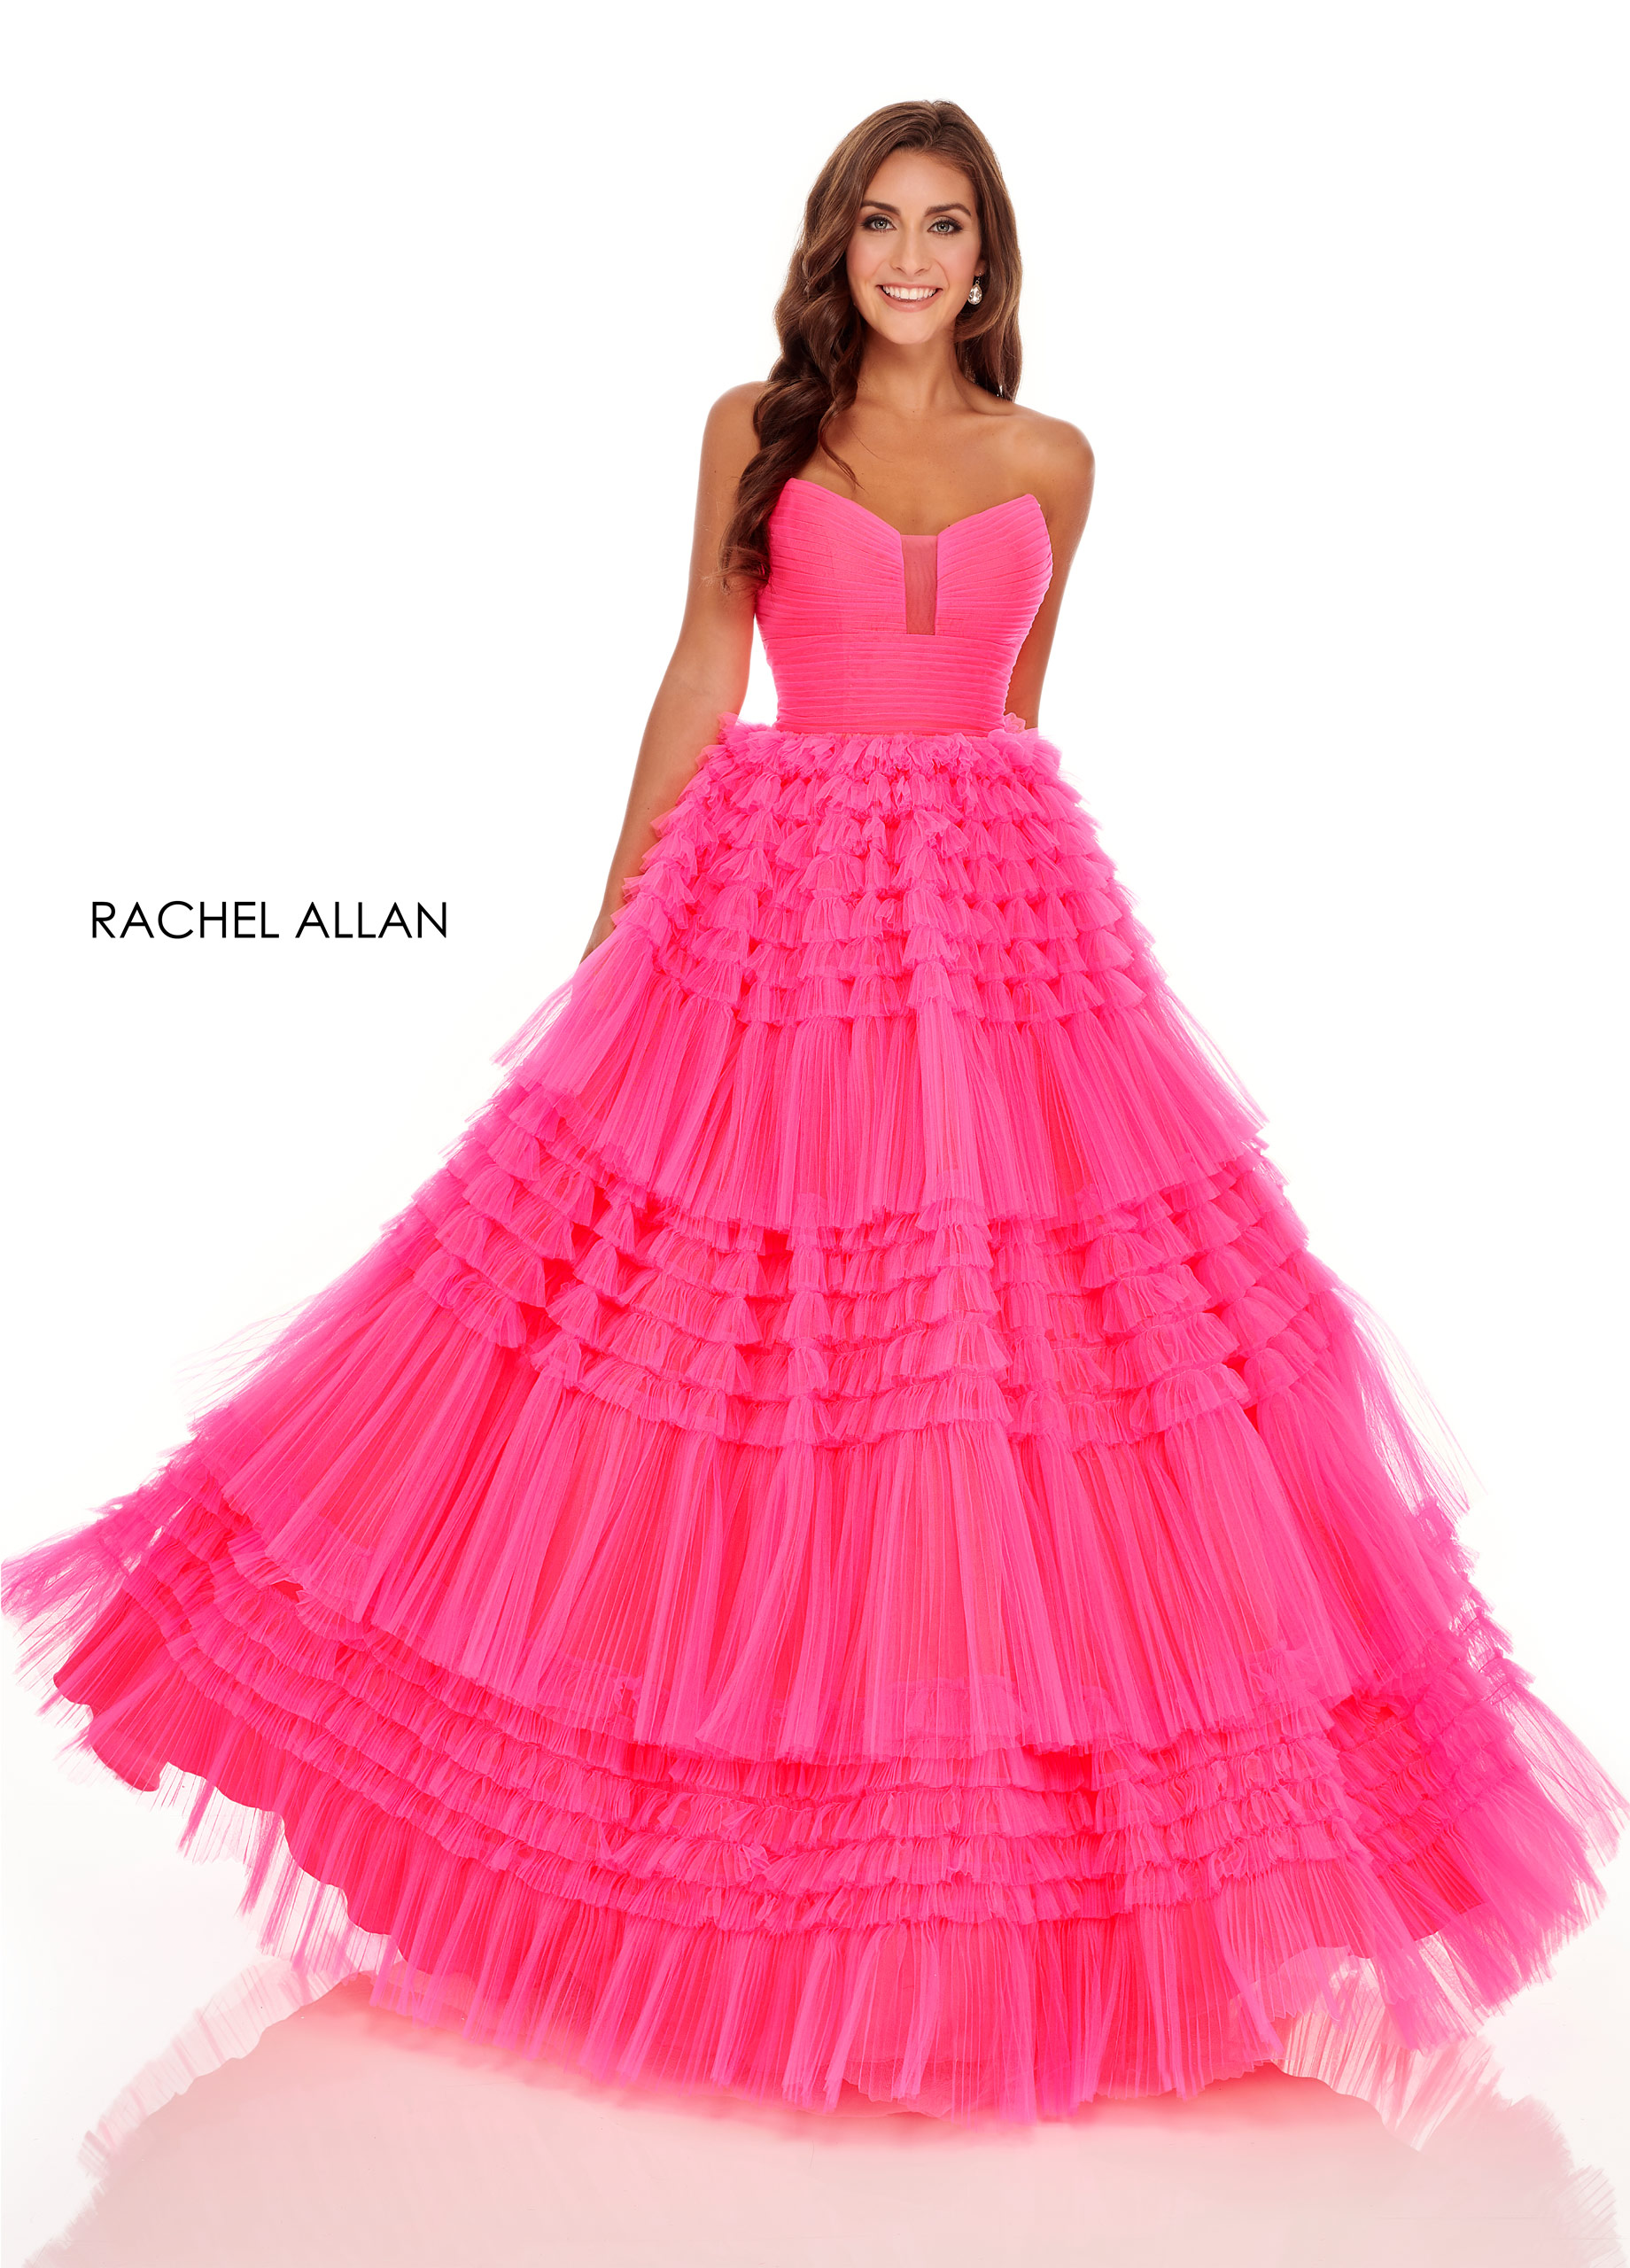 Strapless Ball Gowns Prom Dresses in Pink Color